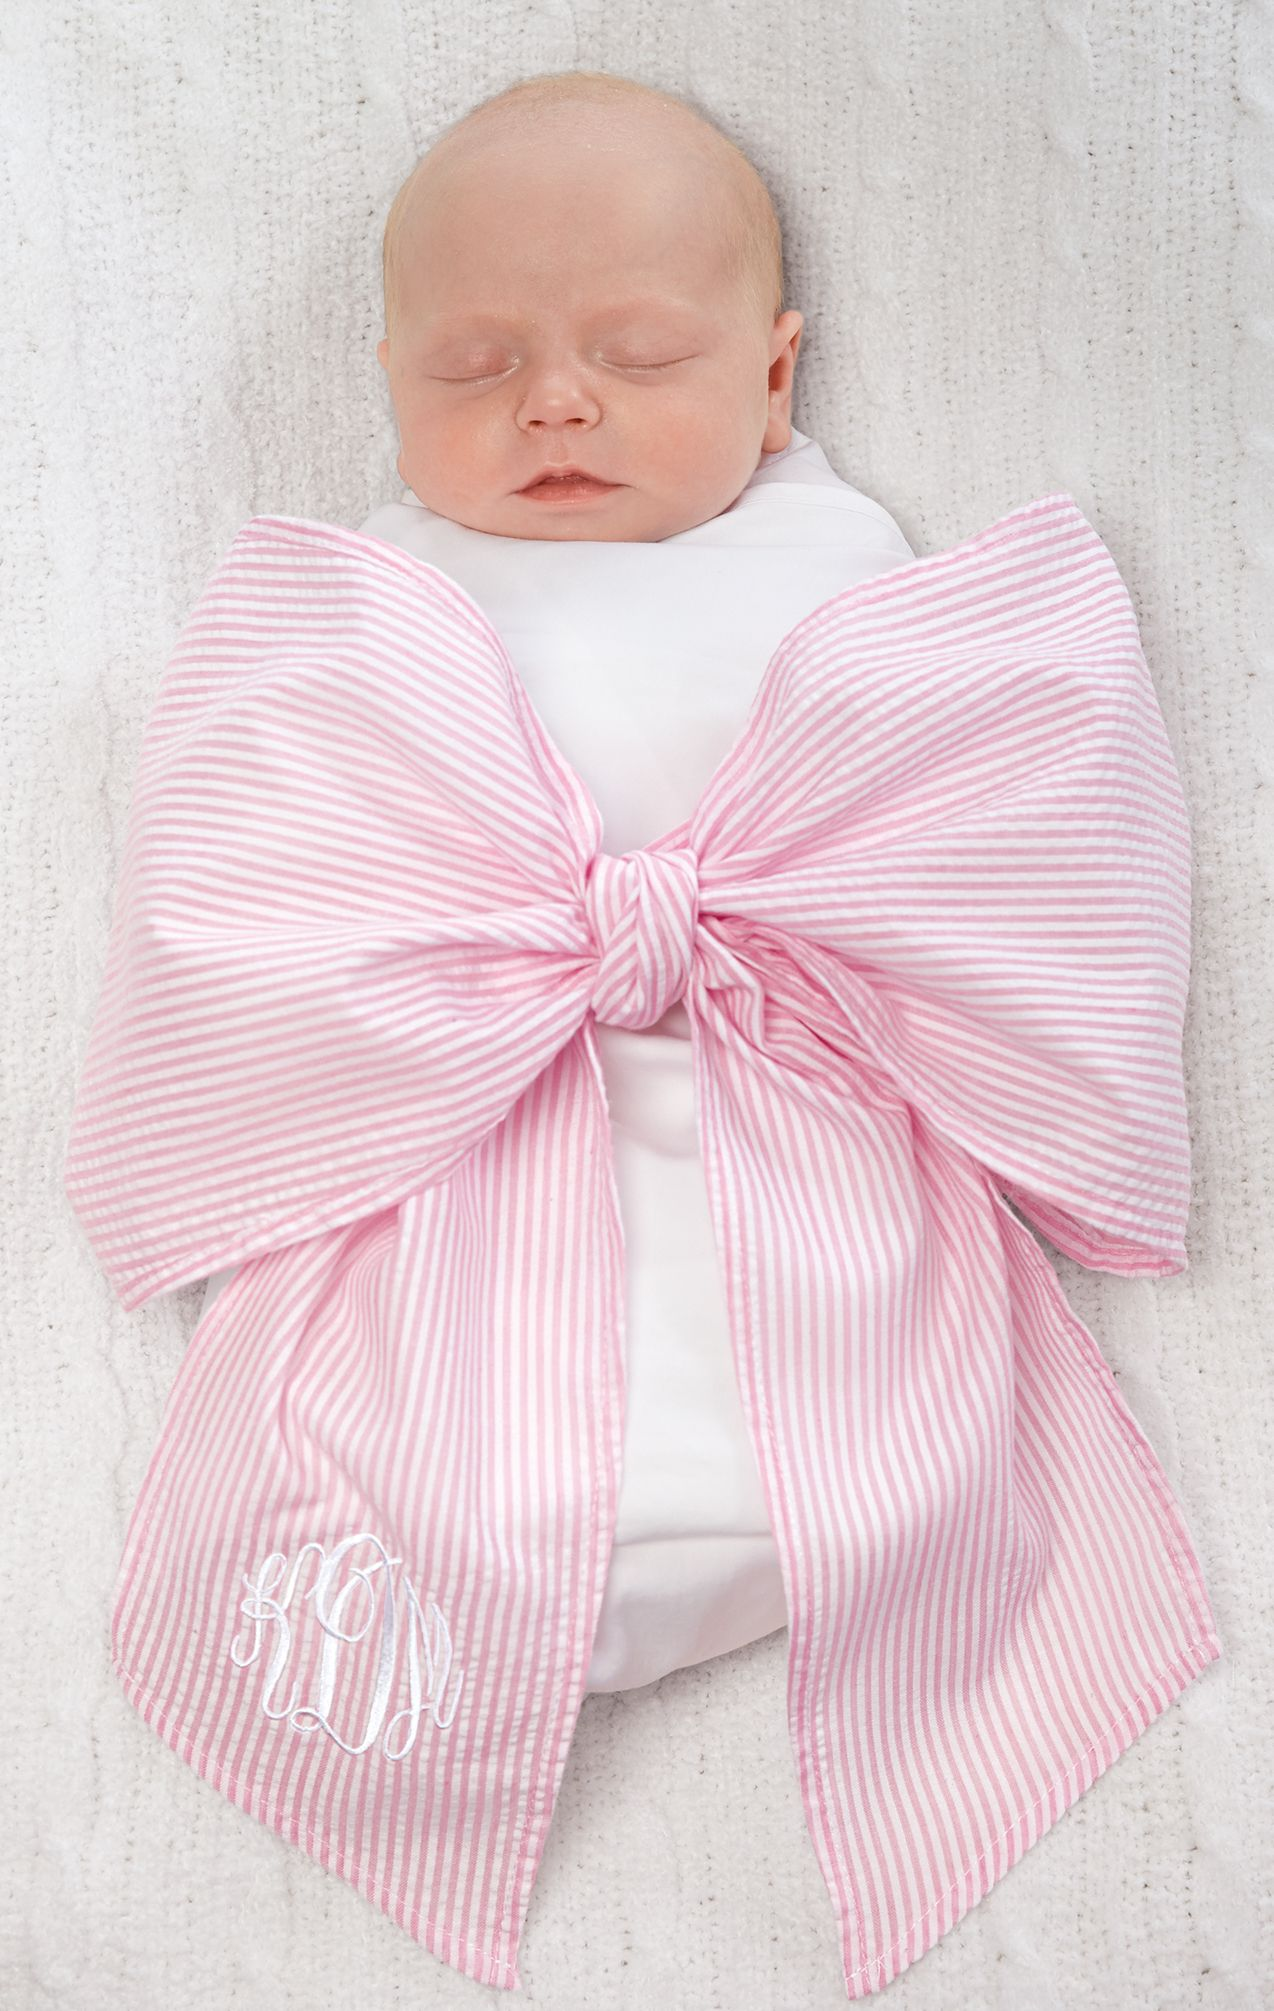 New Mud Pie Seersucker Bow Sash Pink Birth Announcement Maternity Photo Prop